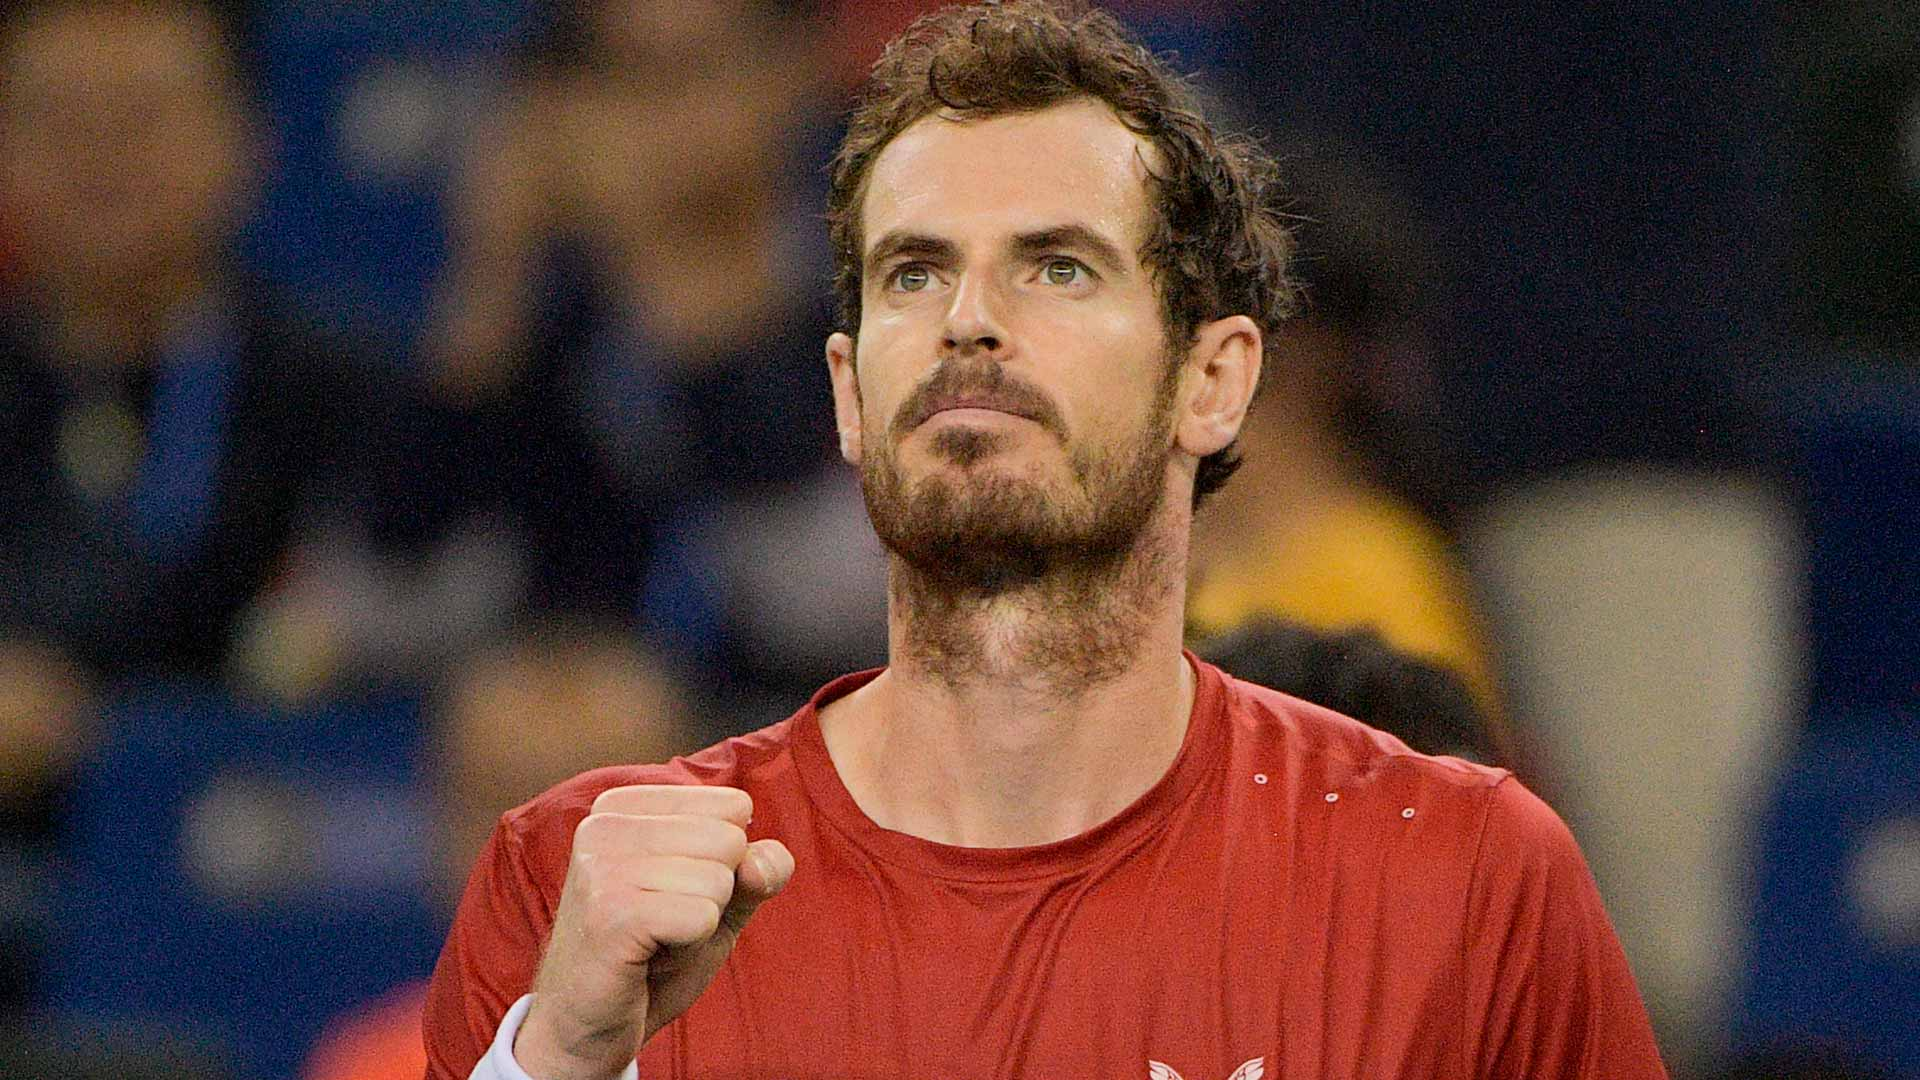 Pressure Andy Murray Marcus Rashford Explain There Is A Difference Between Tennis Football Atp Tour The Union Journal